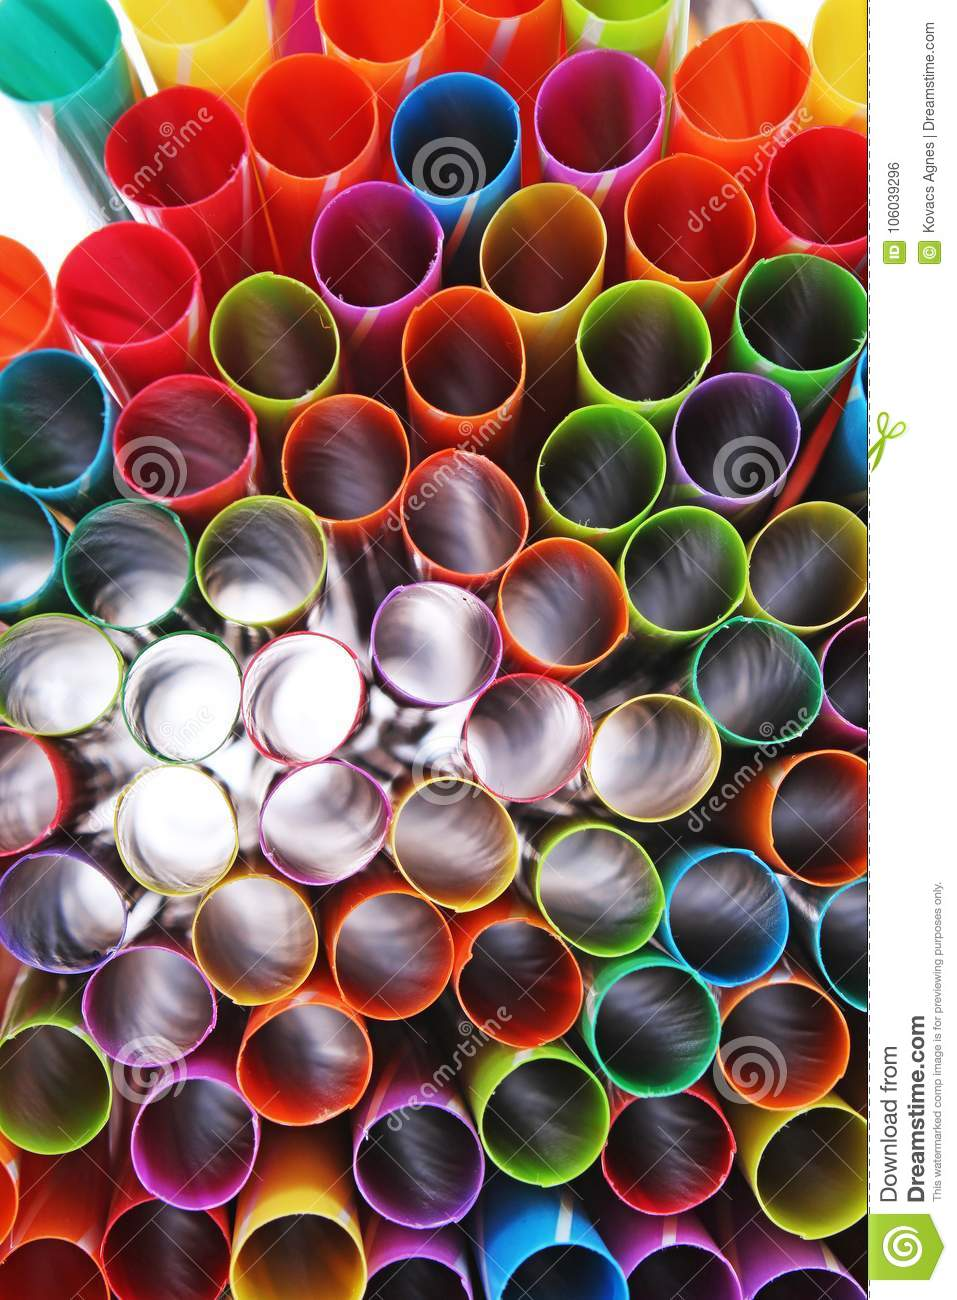 Fancy straw art background. Abstract wallpaper of colored fancy straws. Rainbow colored colorful pattern texture.